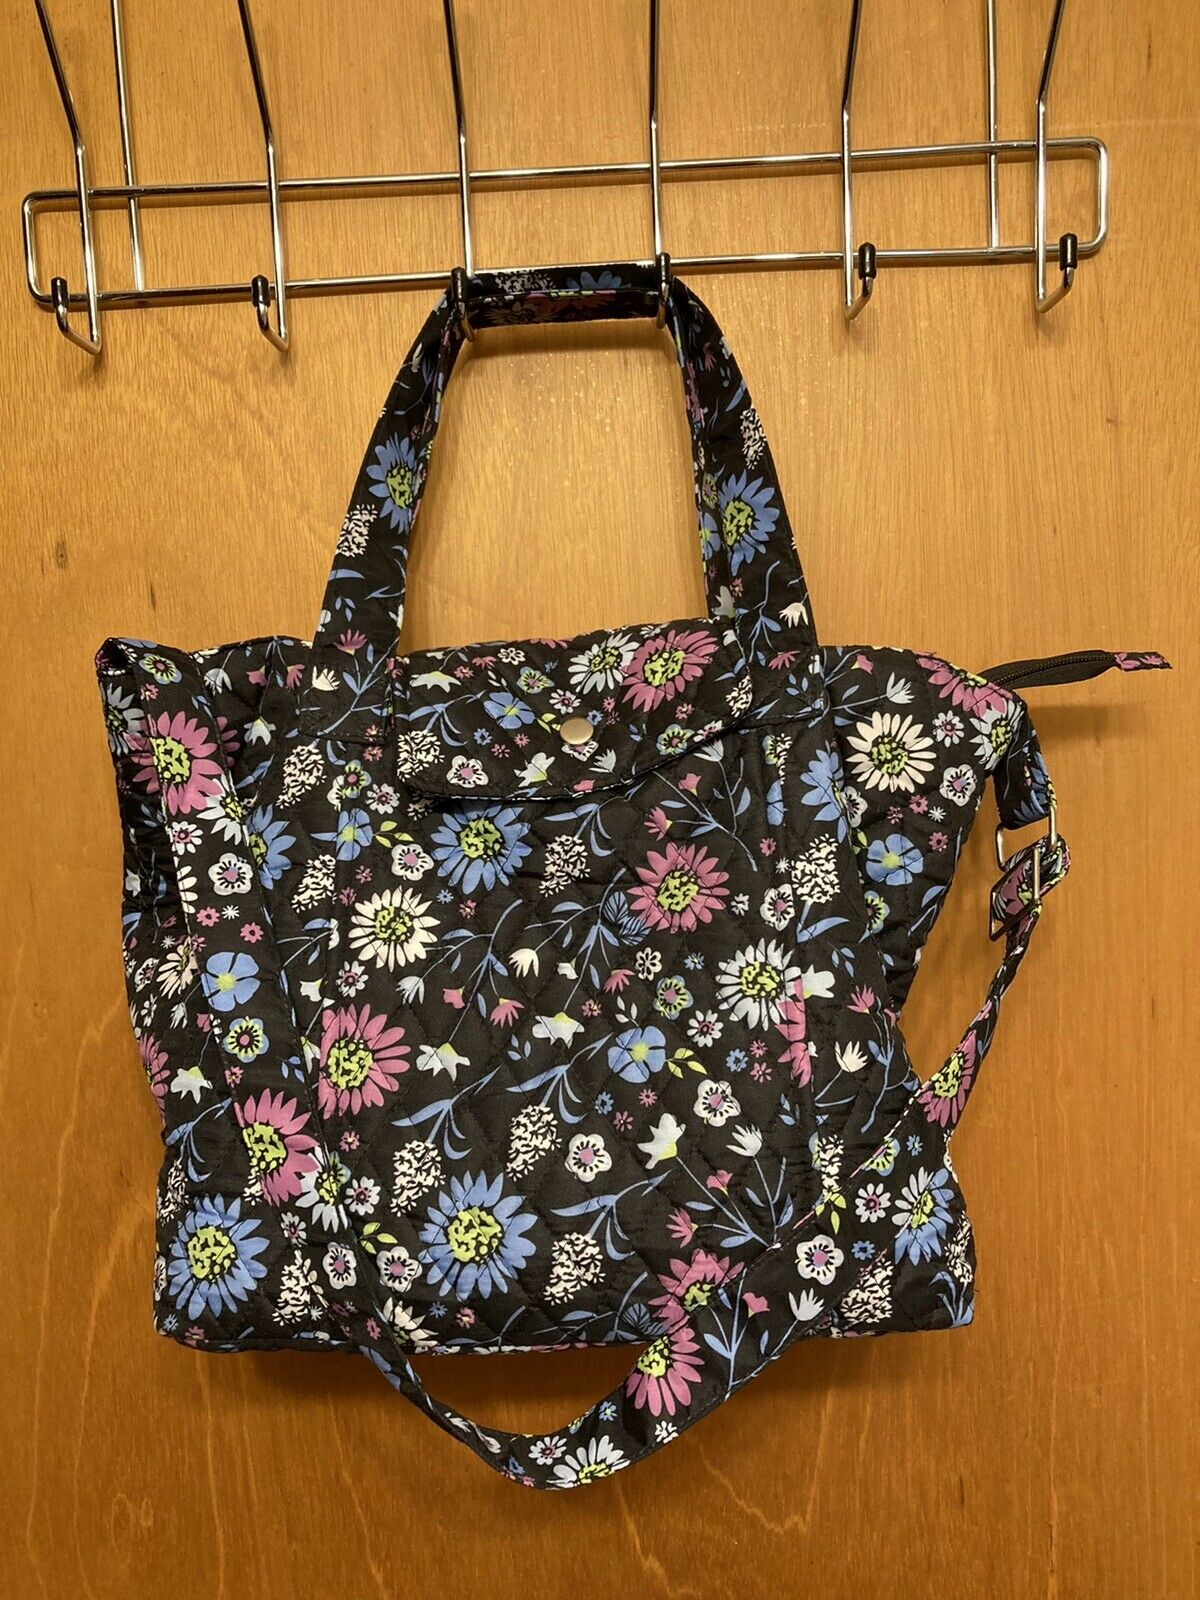 Quilted Floral Purse with Wristlet